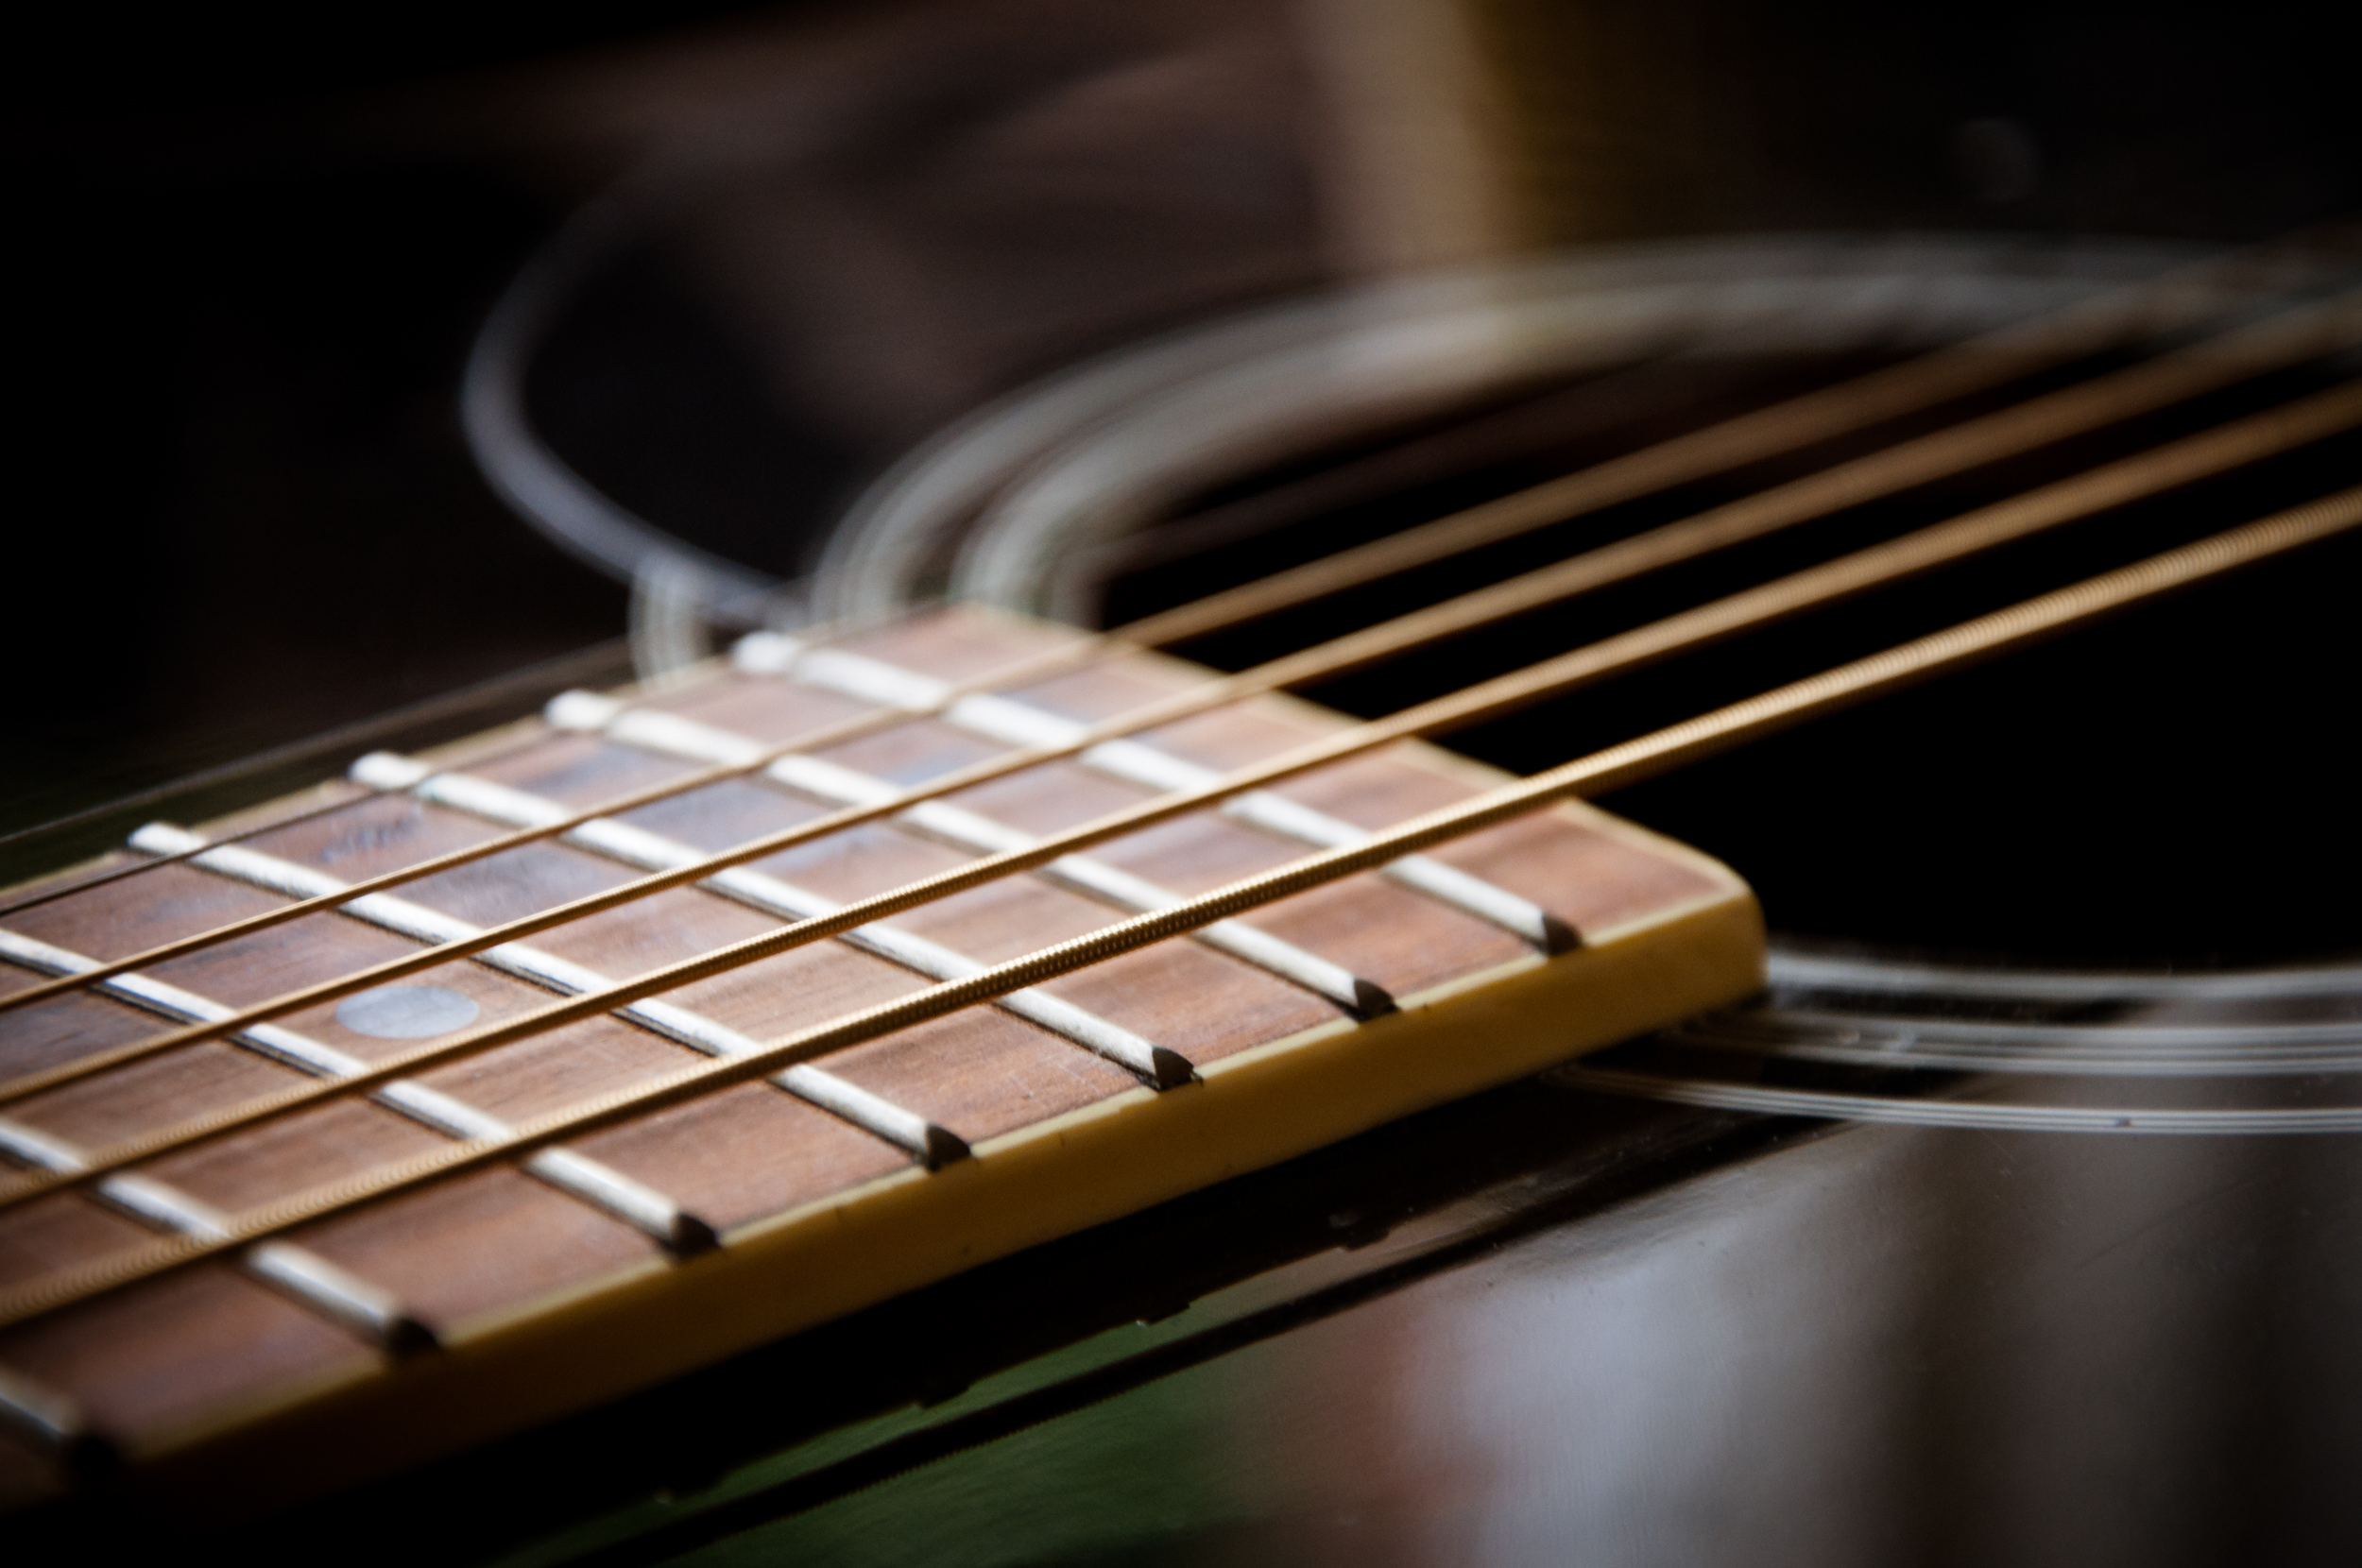 Guitar close up, Musical, White, Vintage, String, HQ Photo